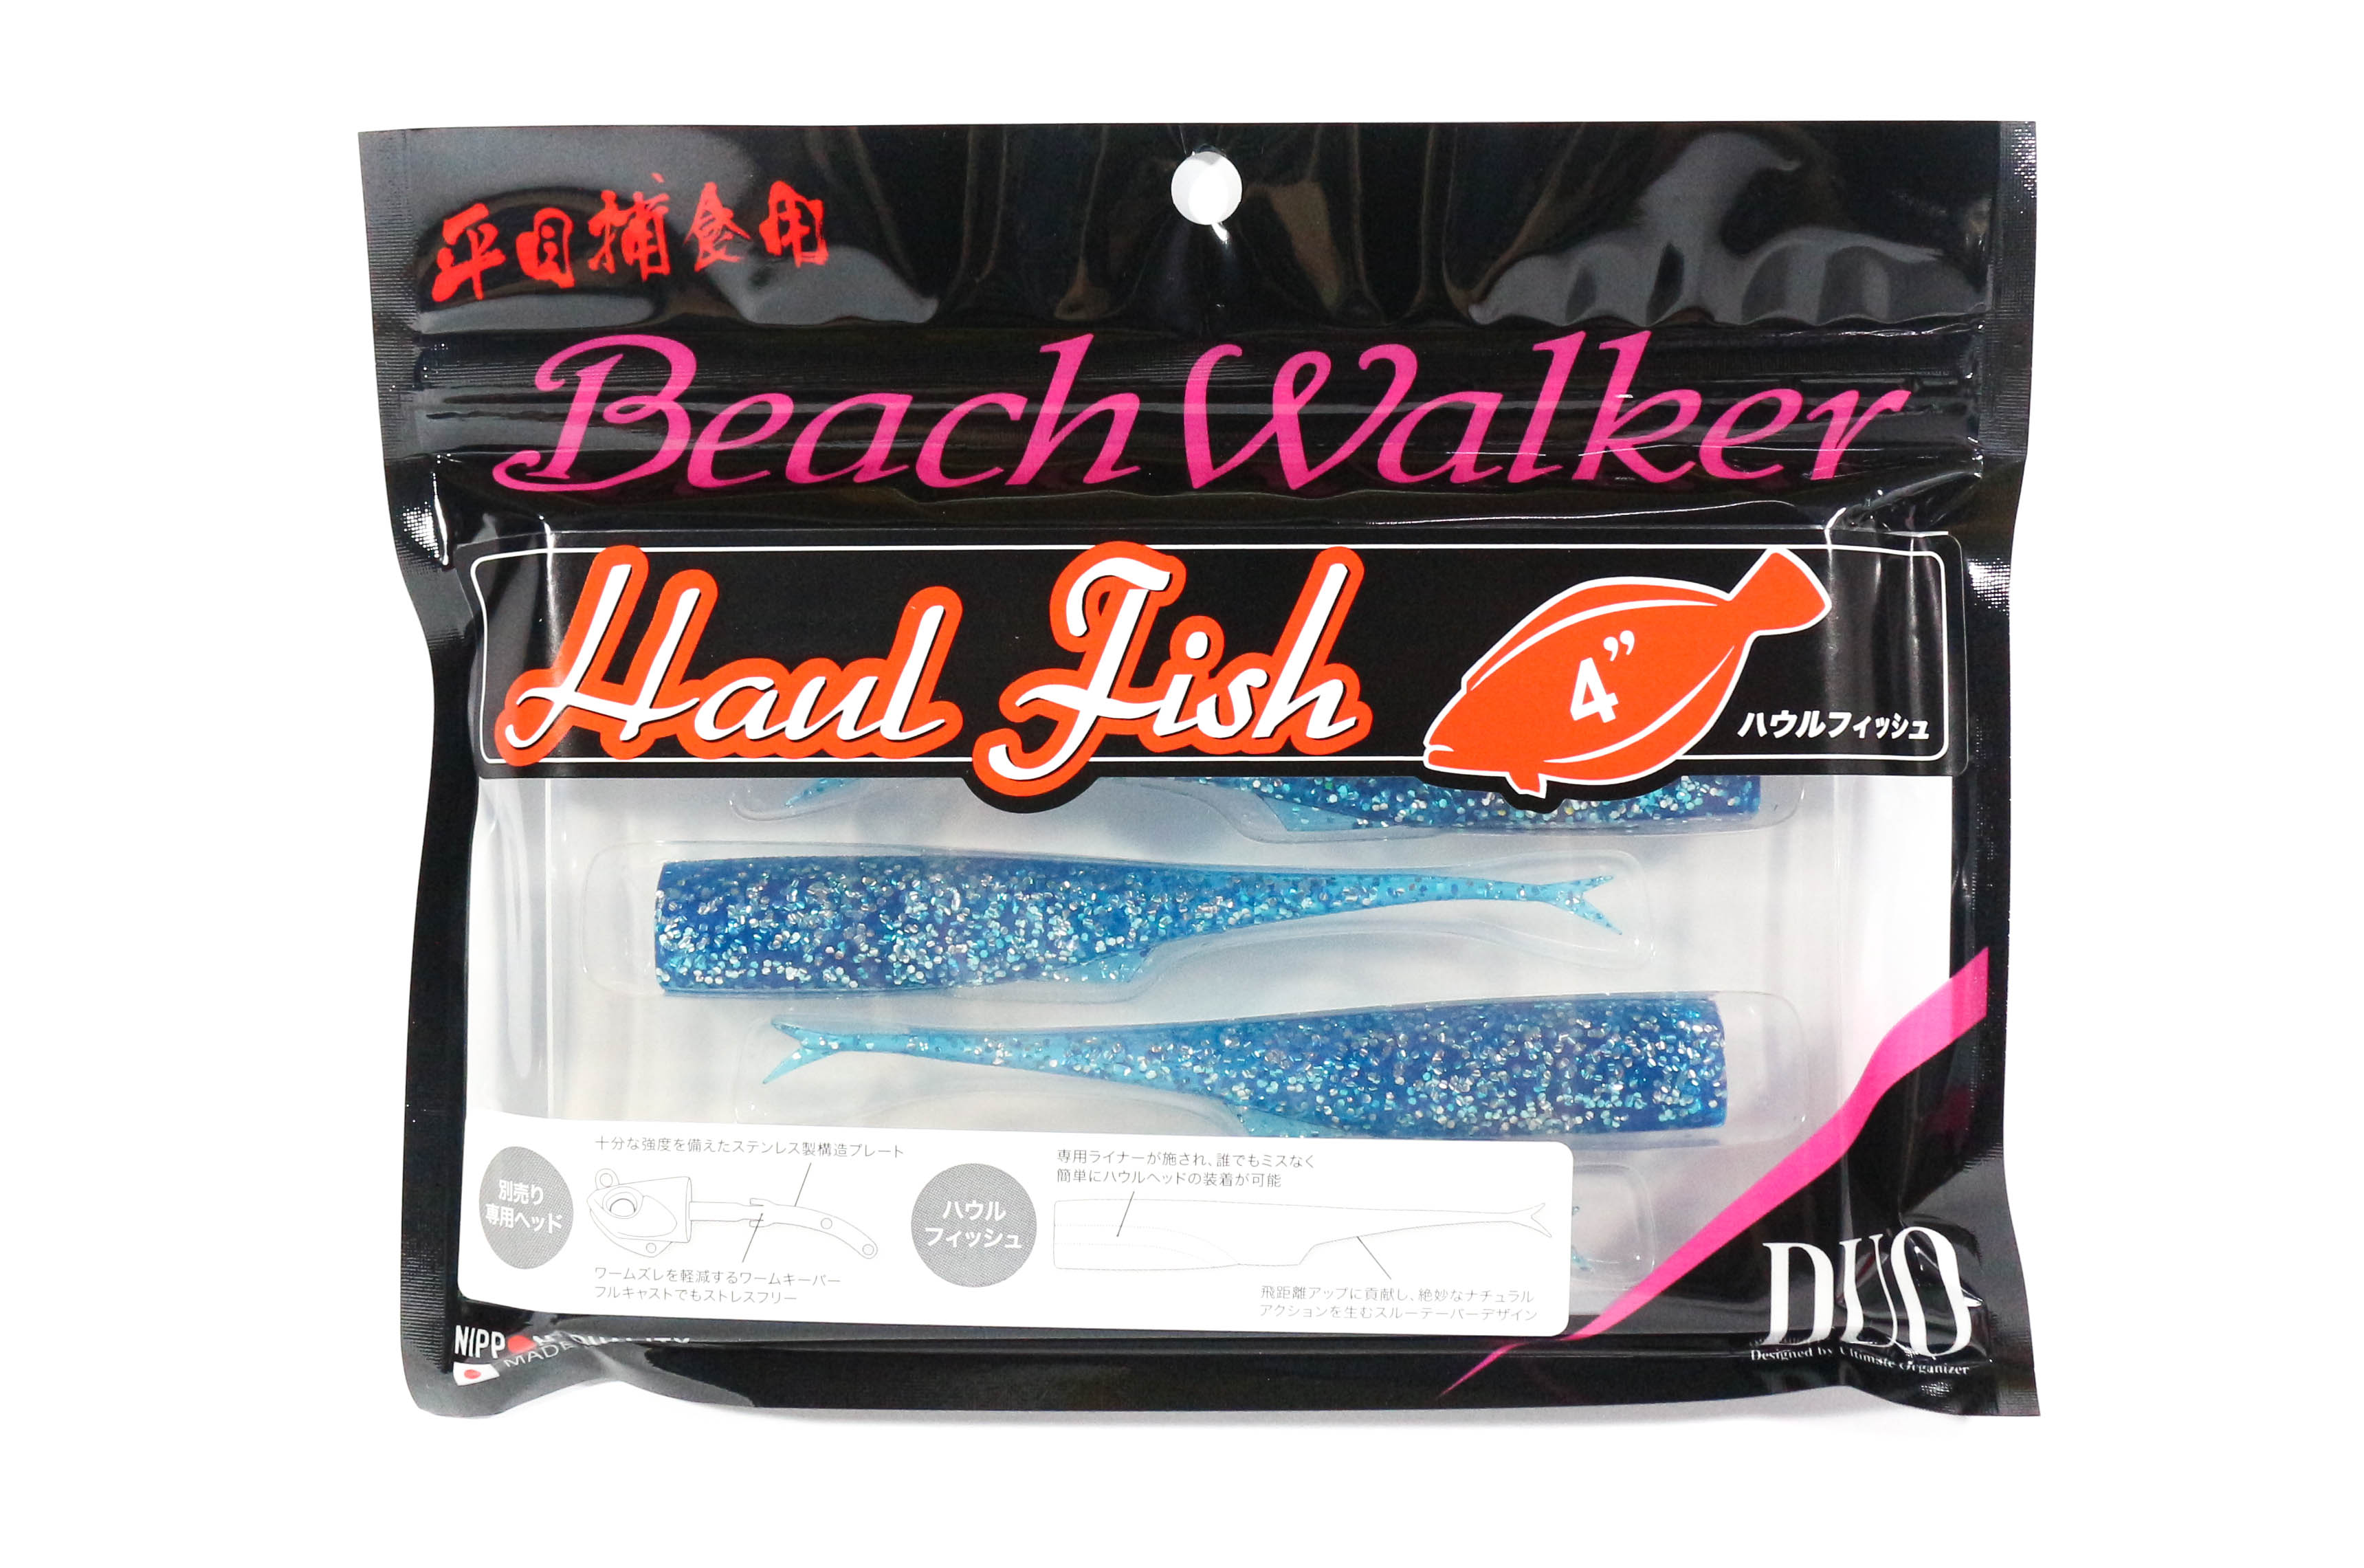 Duo Beach Walker Soft Plastic Haul Fish 4 Inches S011 (9765)